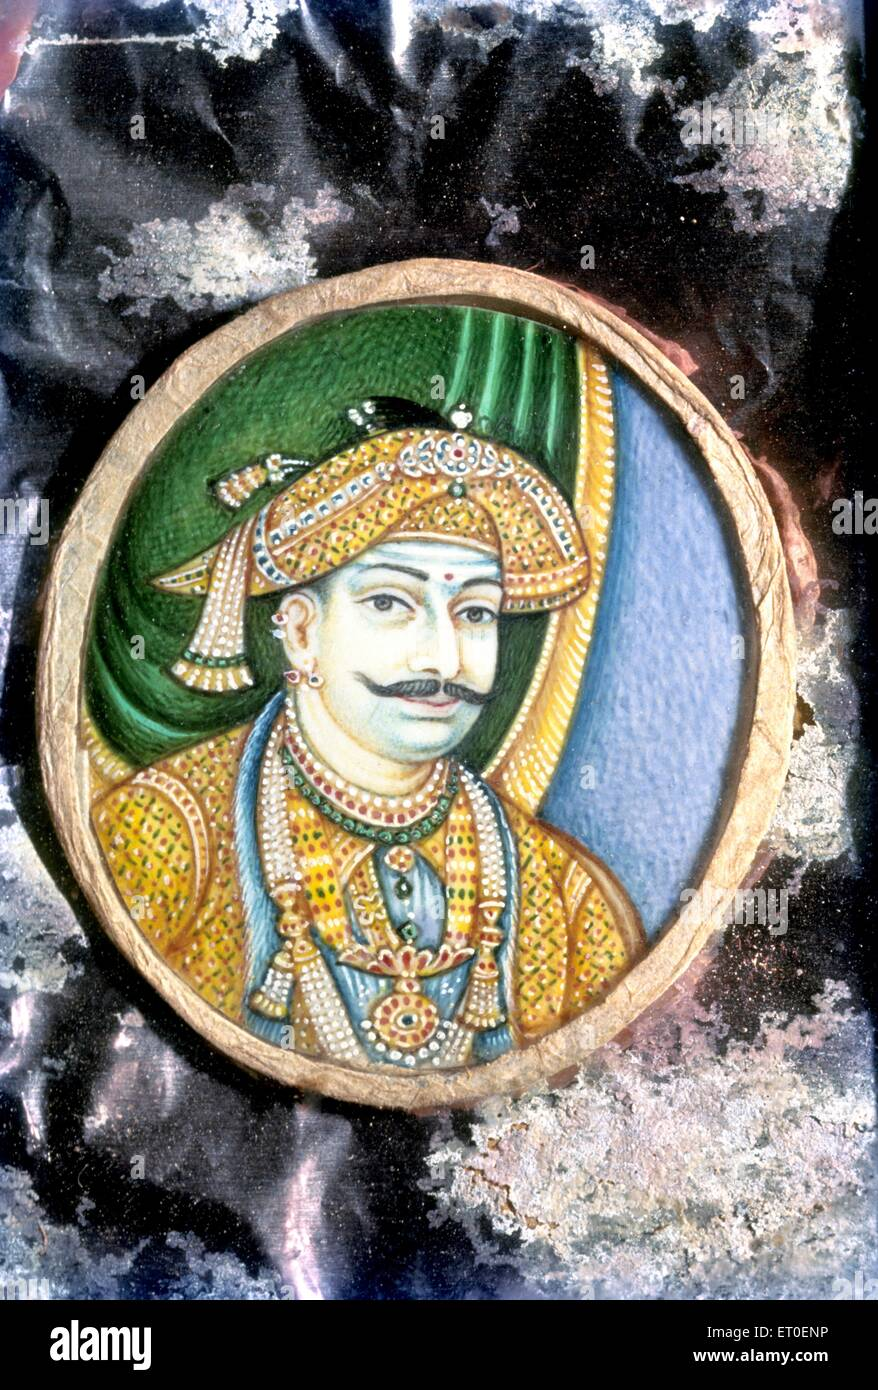 Painting of shivaji II on ivory ;Tanjore ;Thanjavur ; Tamil Nadu ; India - Stock Image